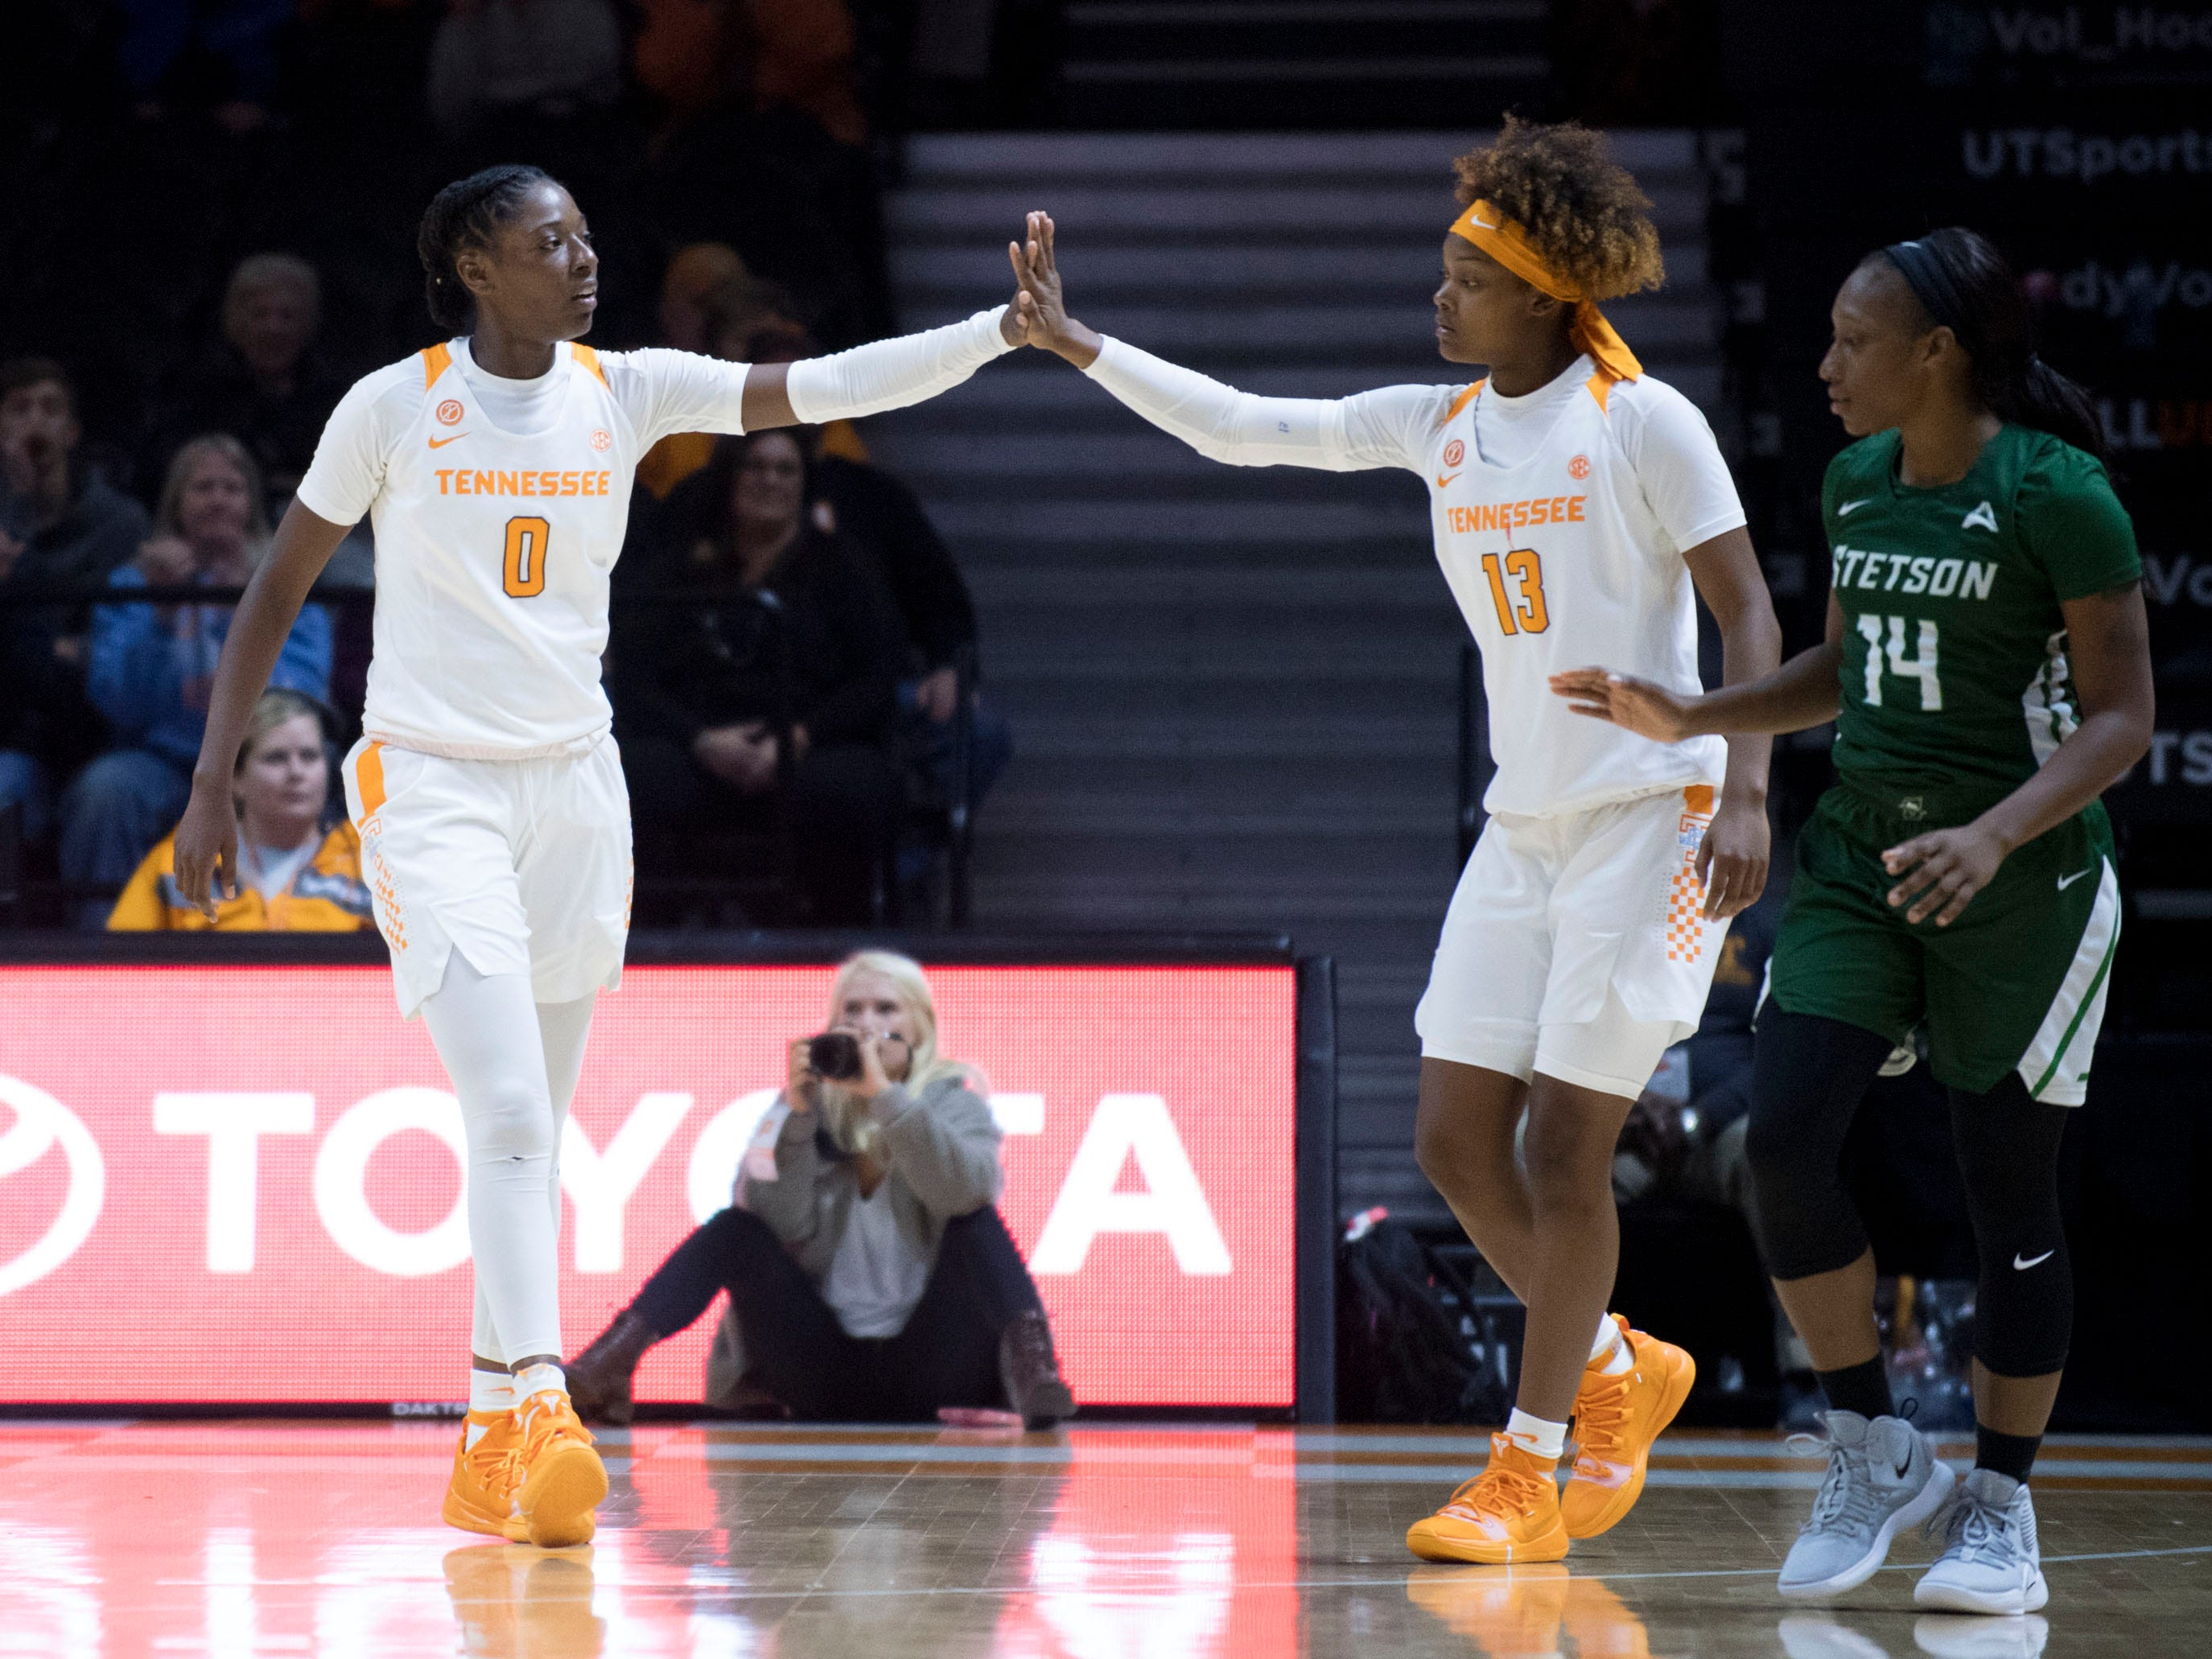 Tennessee's Rennia Davis (0) and Jazmine Massengill (13) celebrate during the game against Stetson on Wednesday, December 5, 2018.